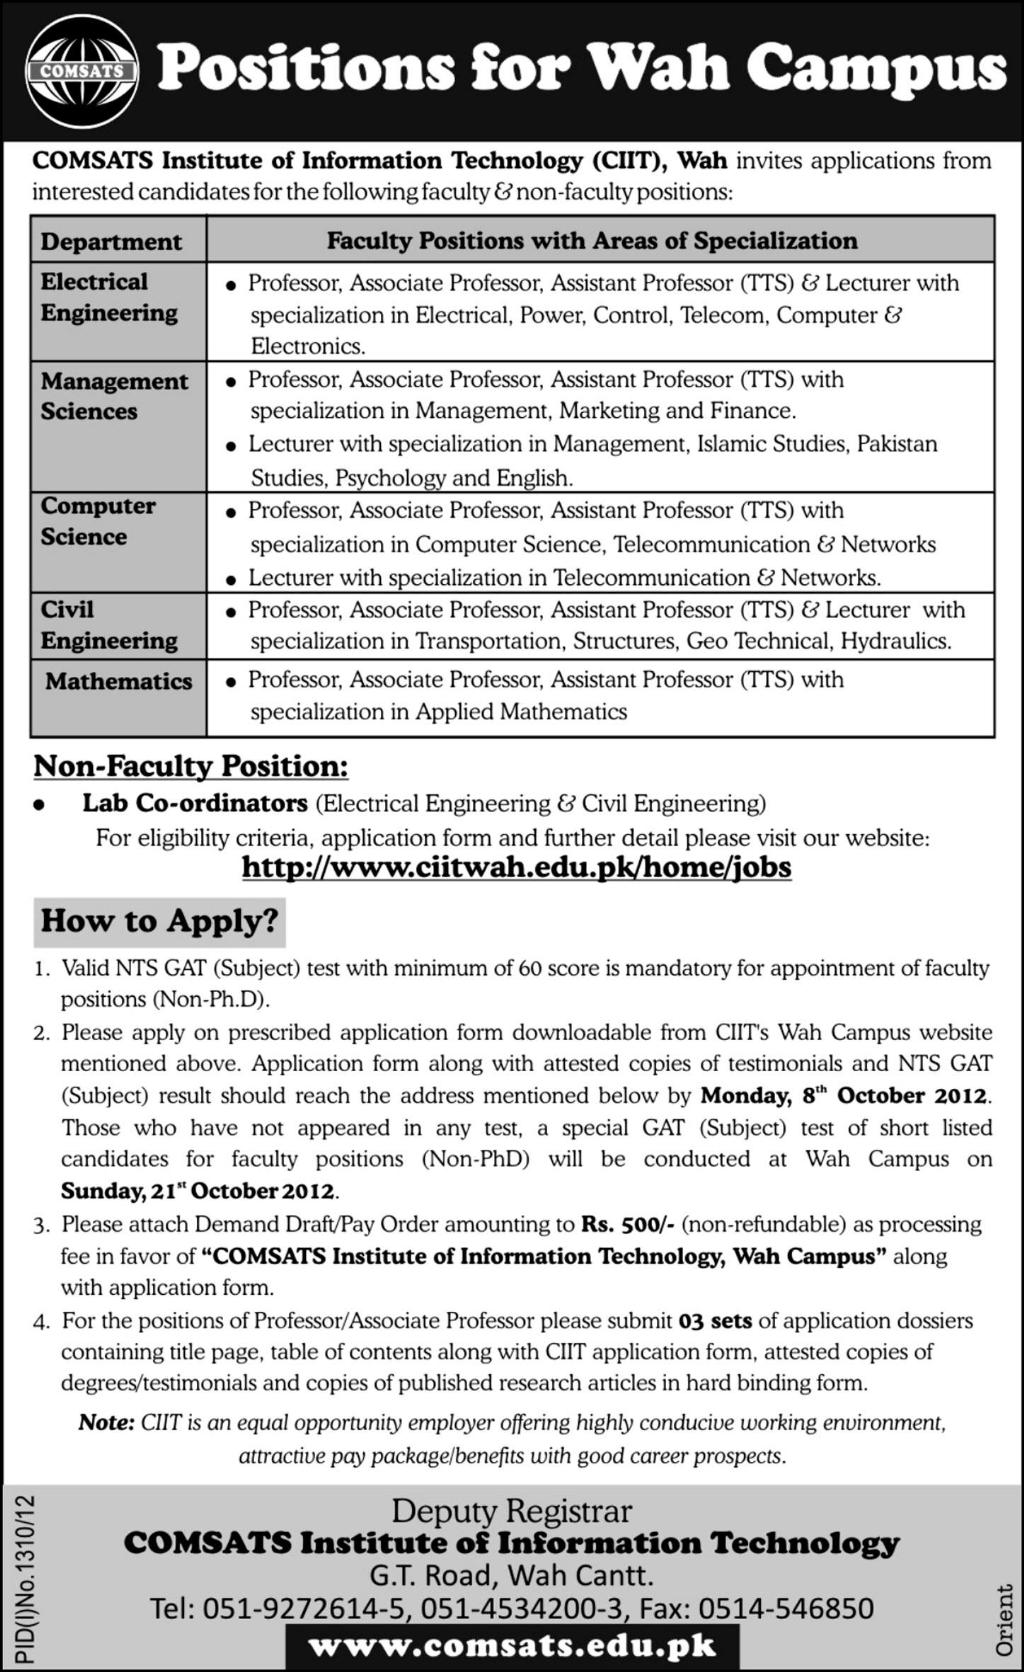 COMSATS Institute of Information Technology (CIIT) Requires Teaching Faculty